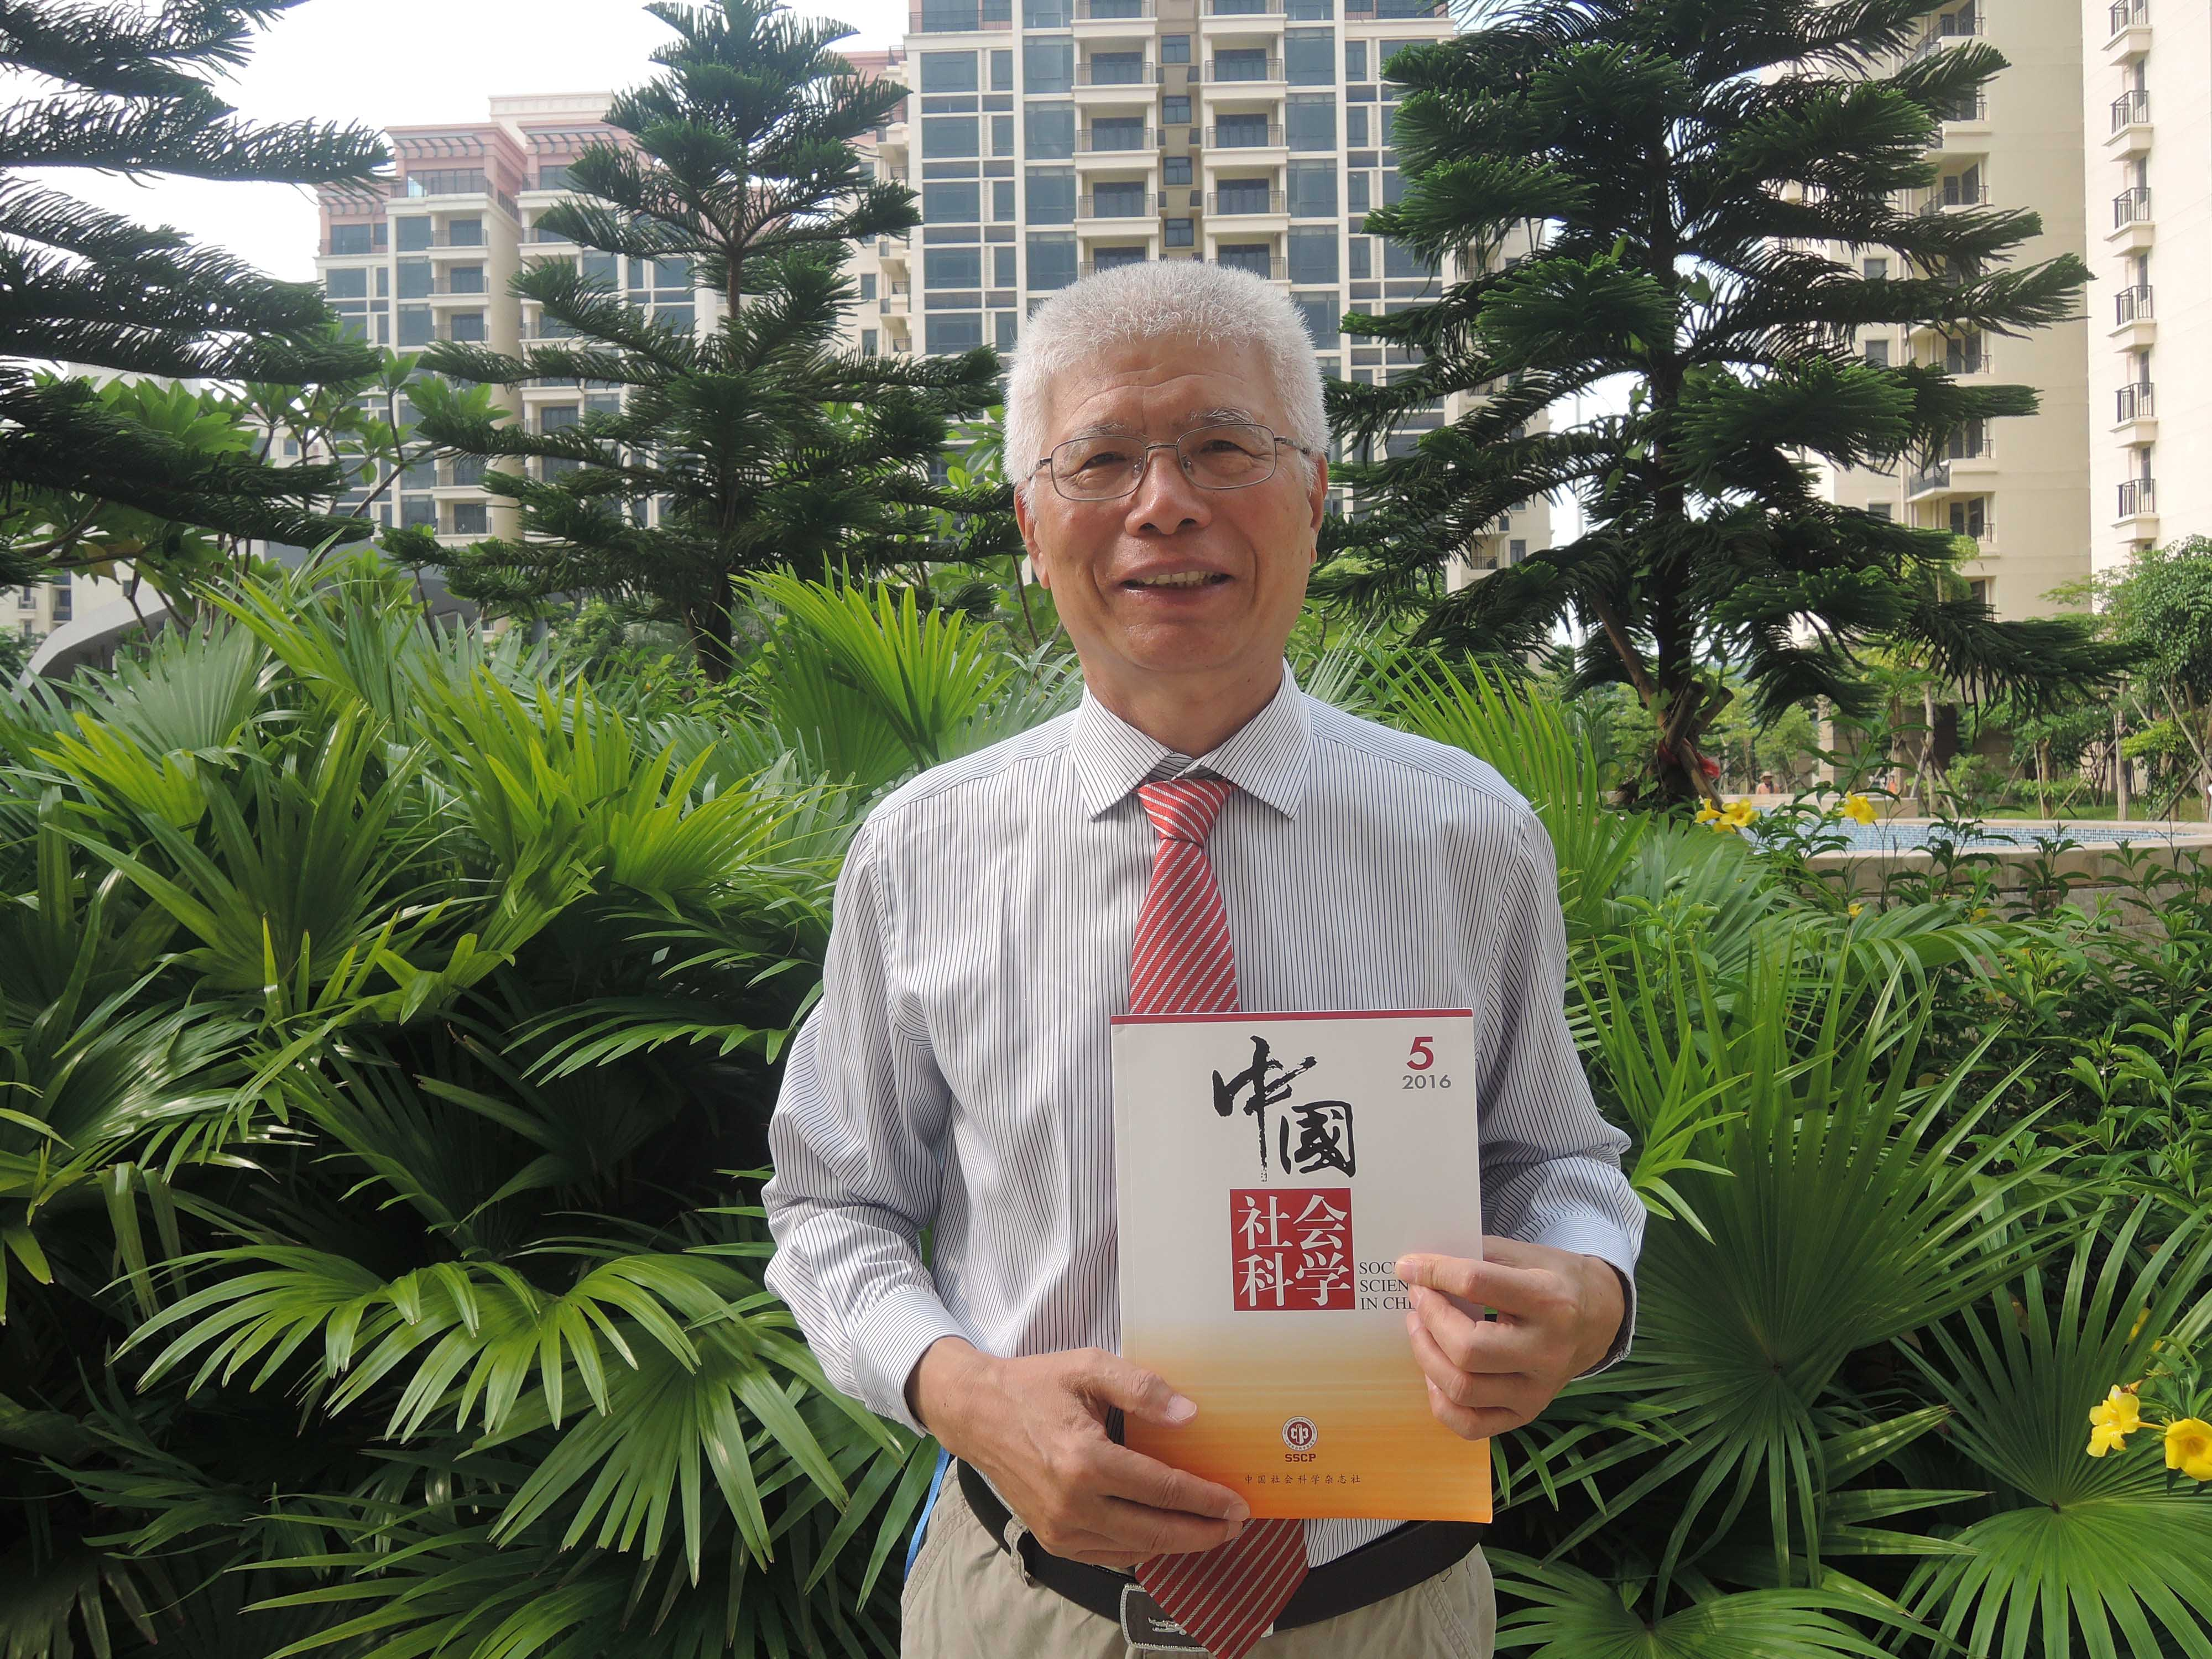 A UM professor's paper has been published in the prestigious Social Science in China